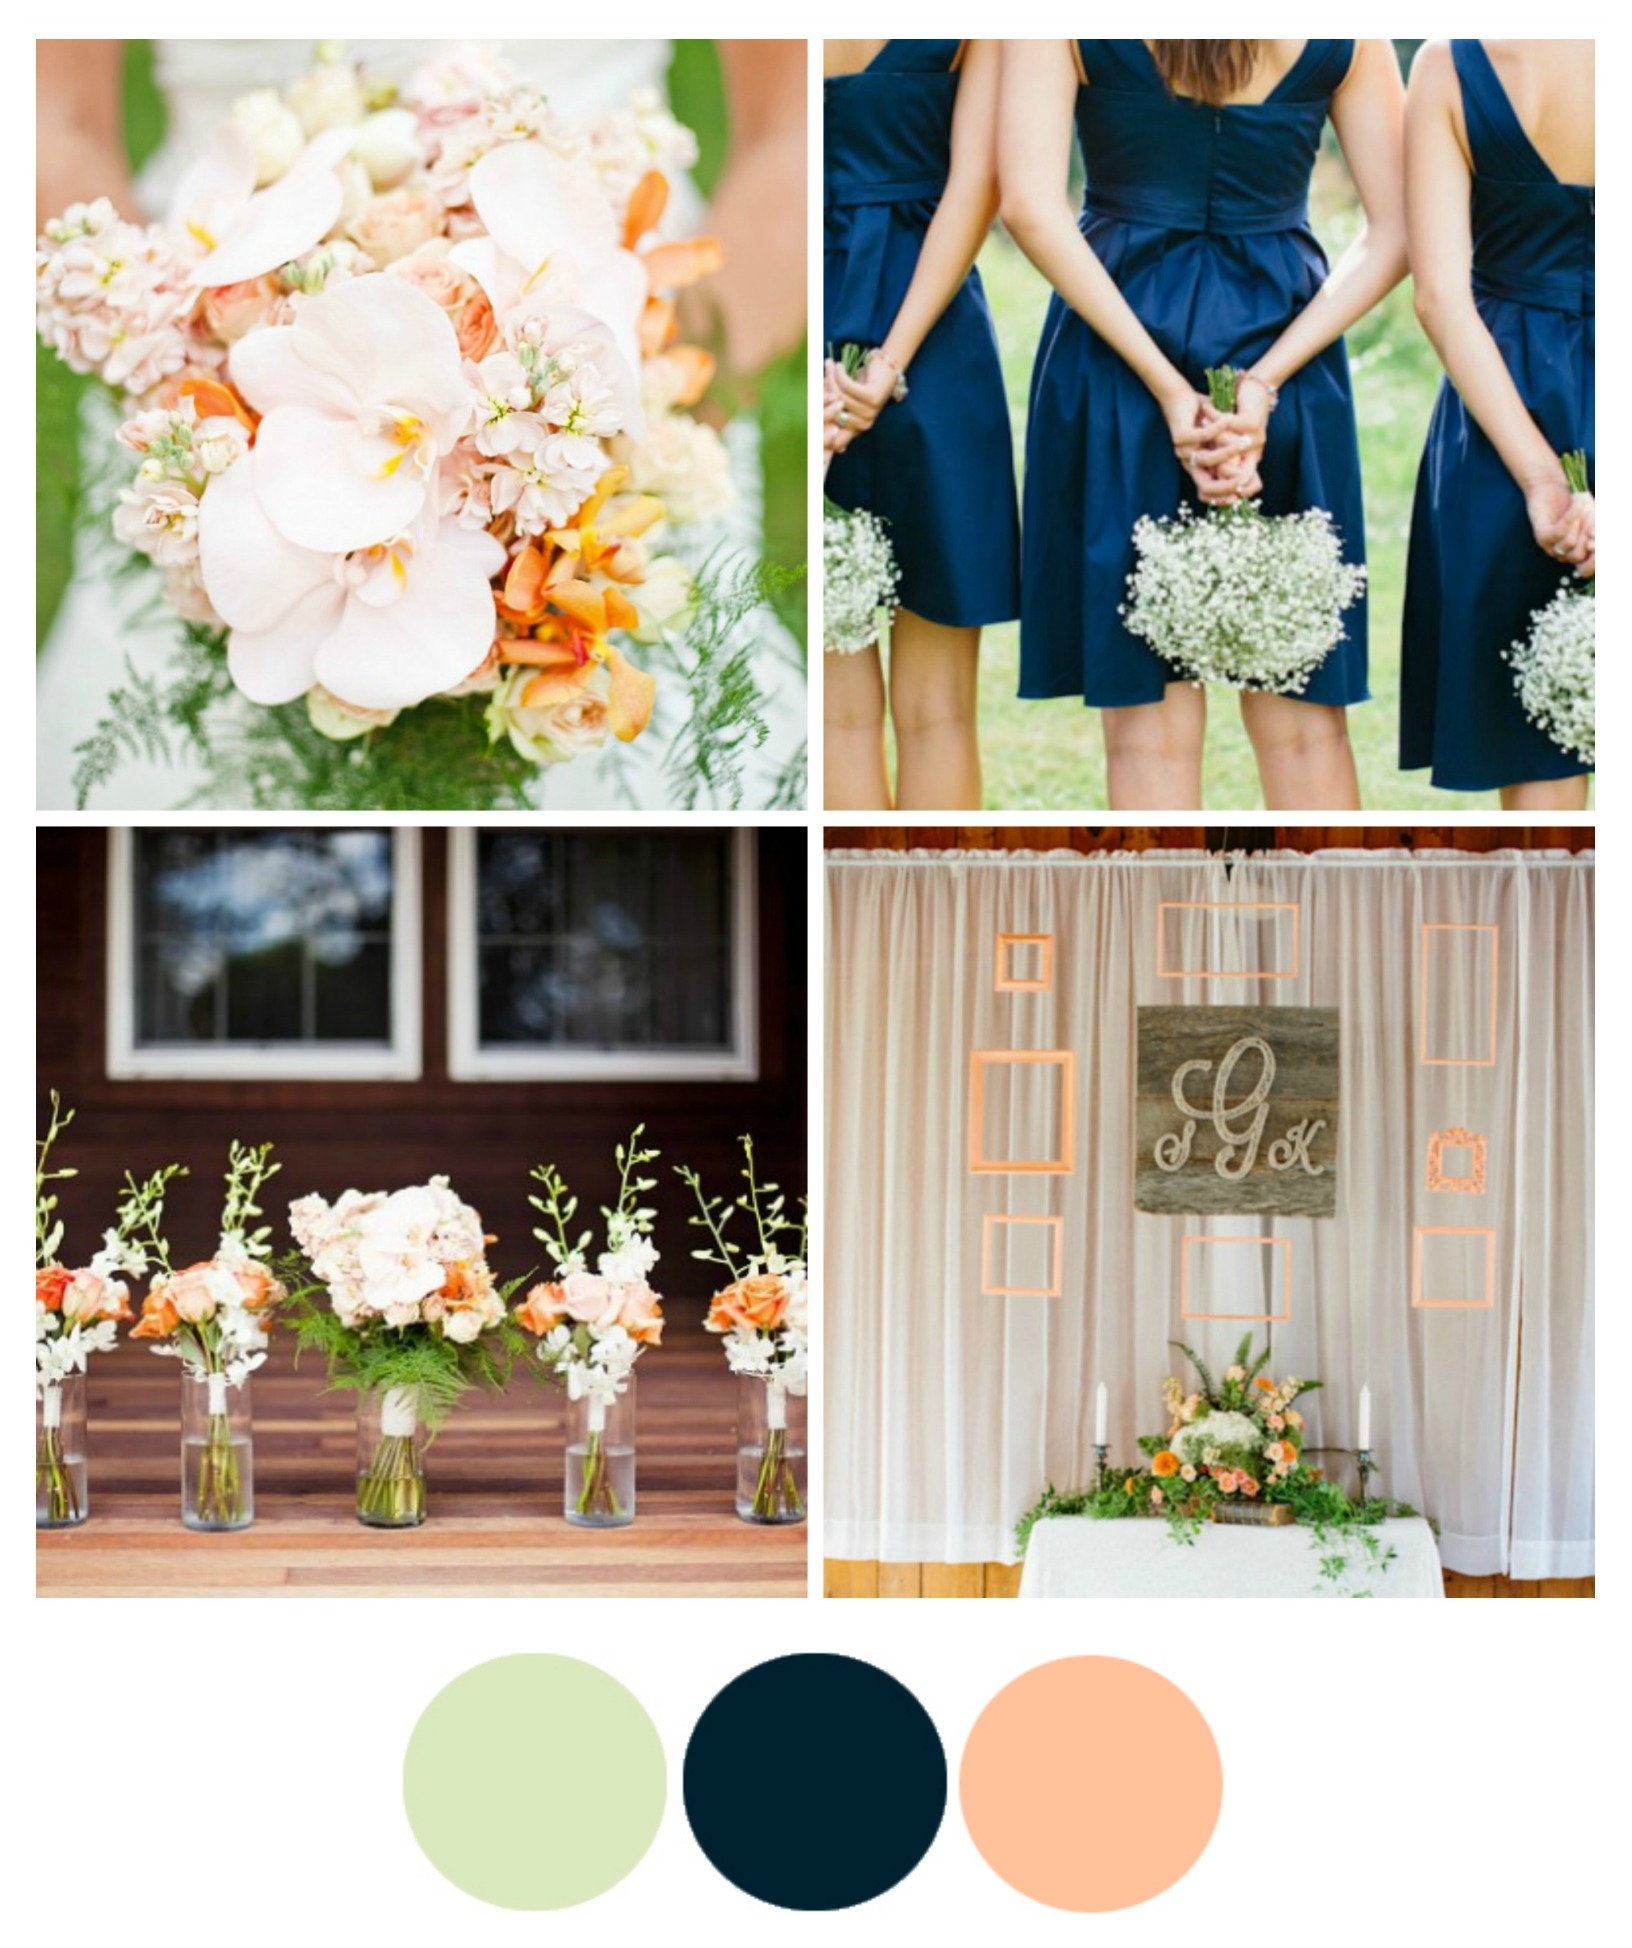 Wedding Ideas By Colour: Wedding Color Inspiration : Peach And Navy